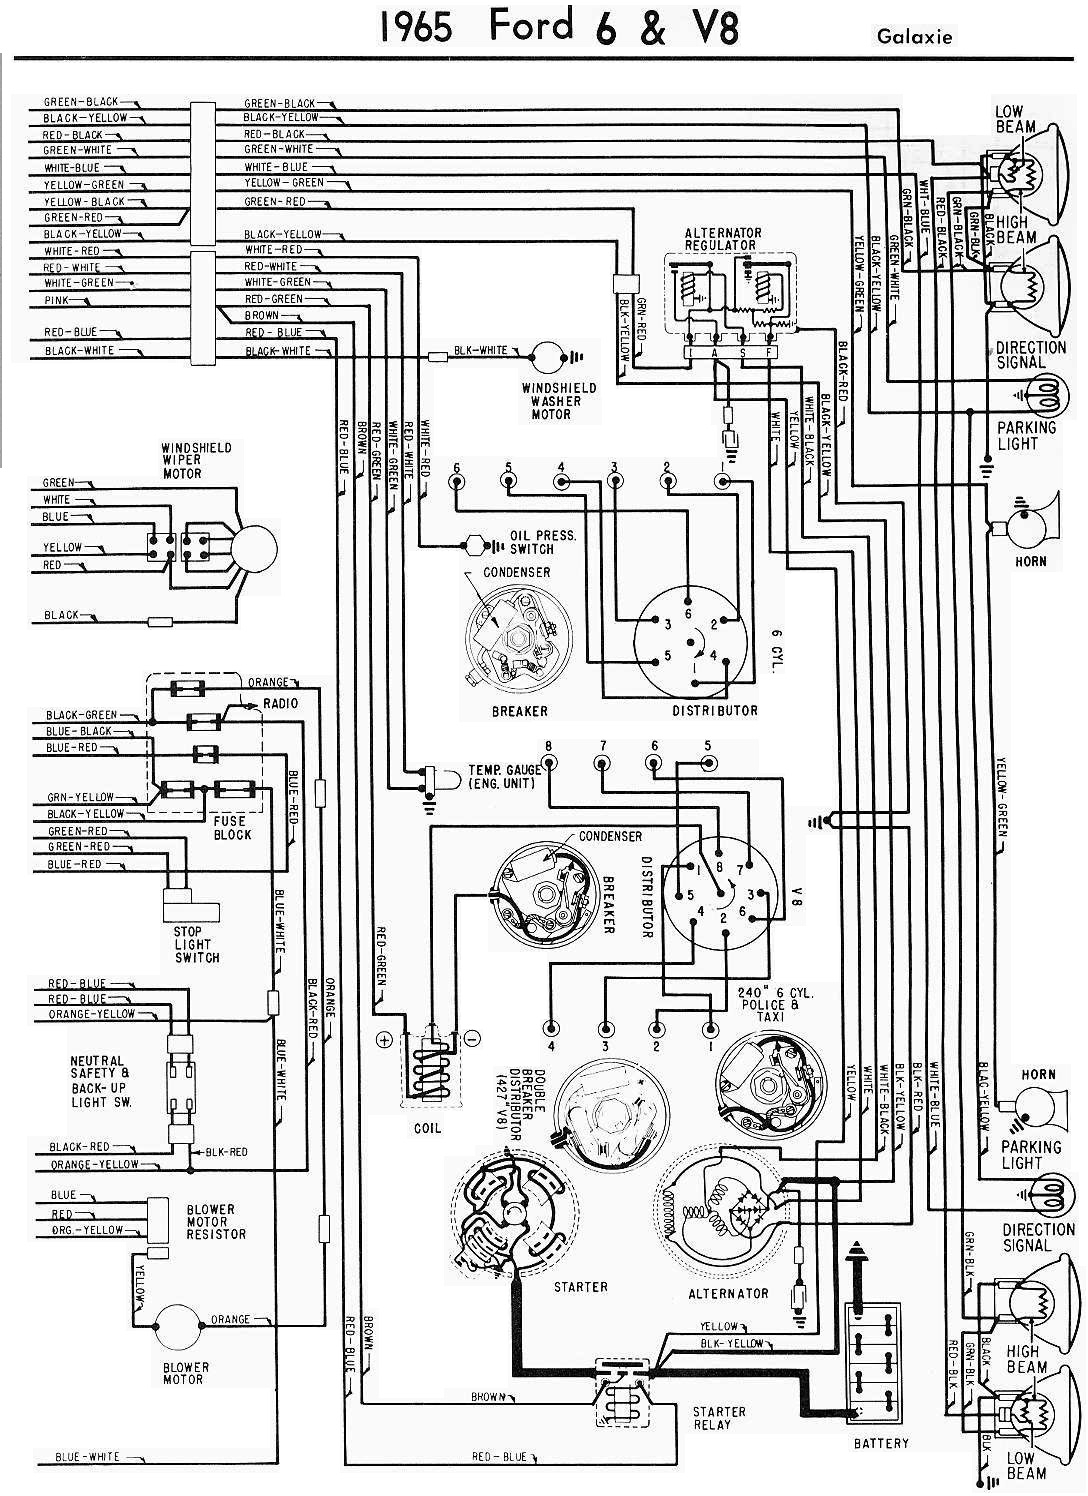 1963 corvette ignition system wiring diagram